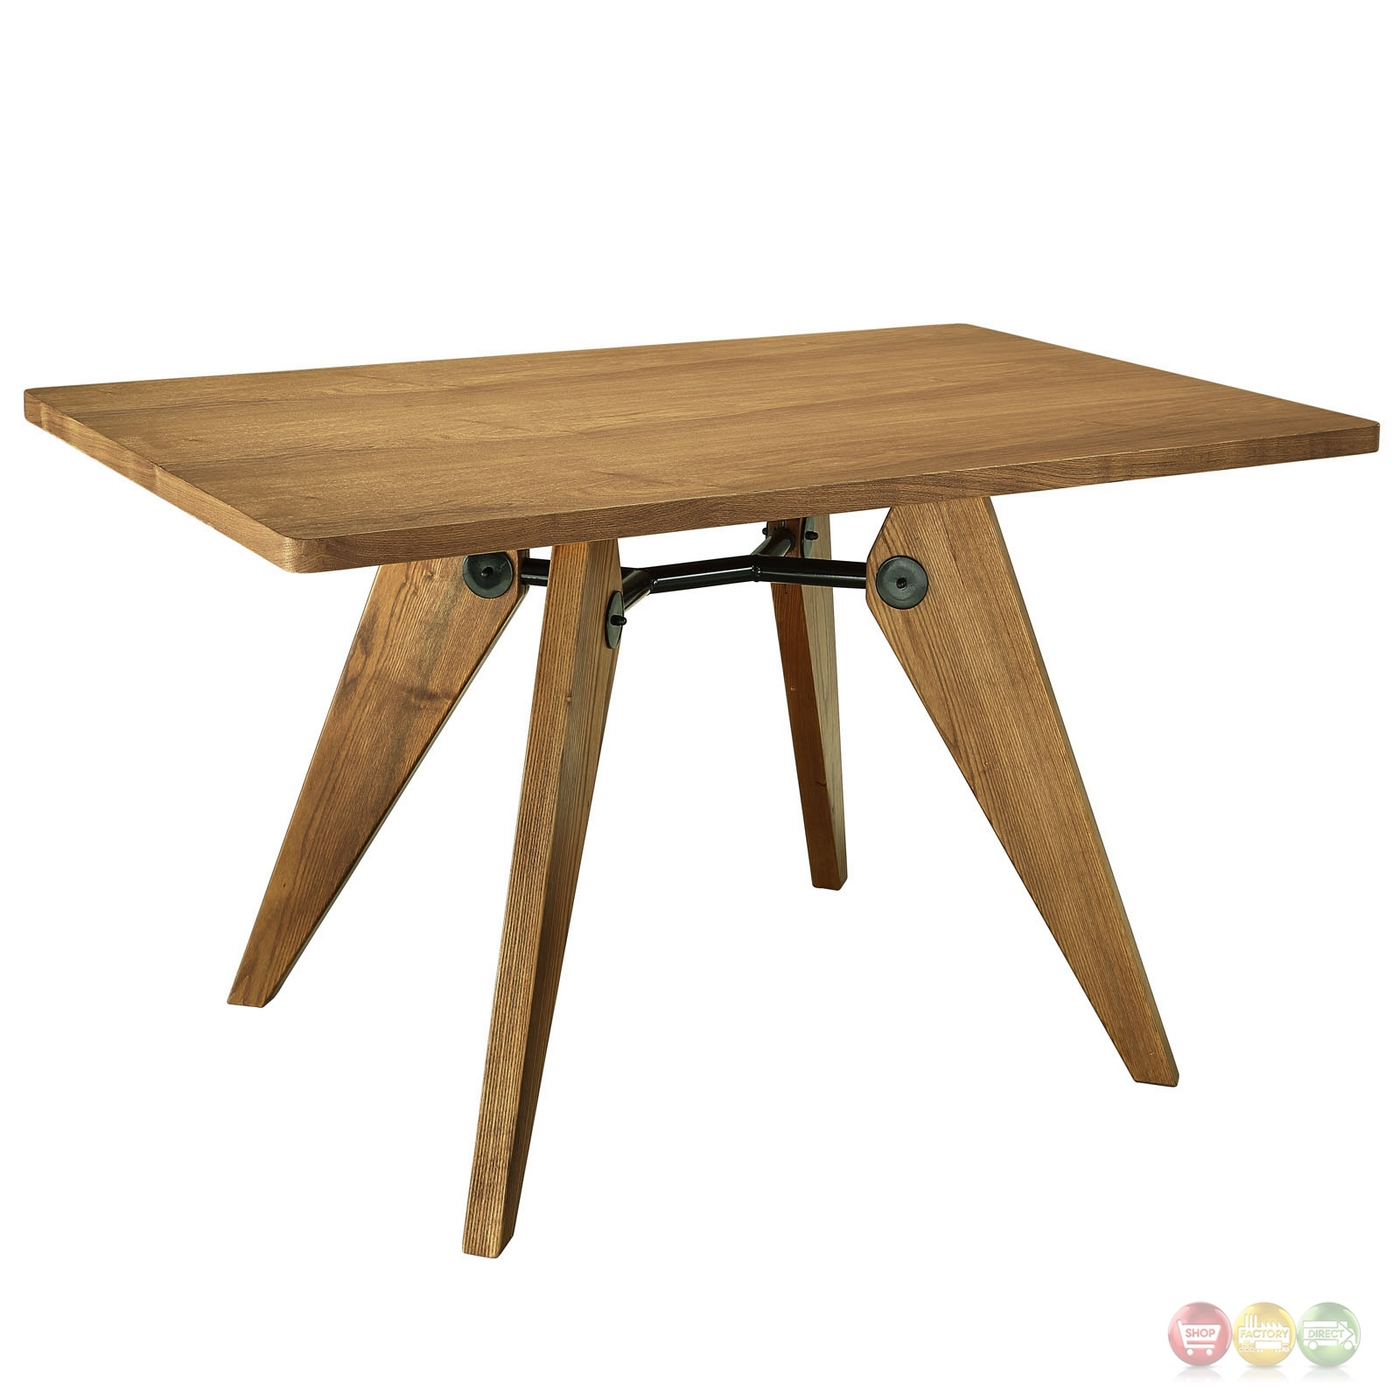 Landing 32quot Round Dining Table In Natural Wood Finish W  : landing 32 round dining table in natural wood finish w metal accents walnut 4 from shopfactorydirect.com size 1400 x 1400 jpeg 335kB